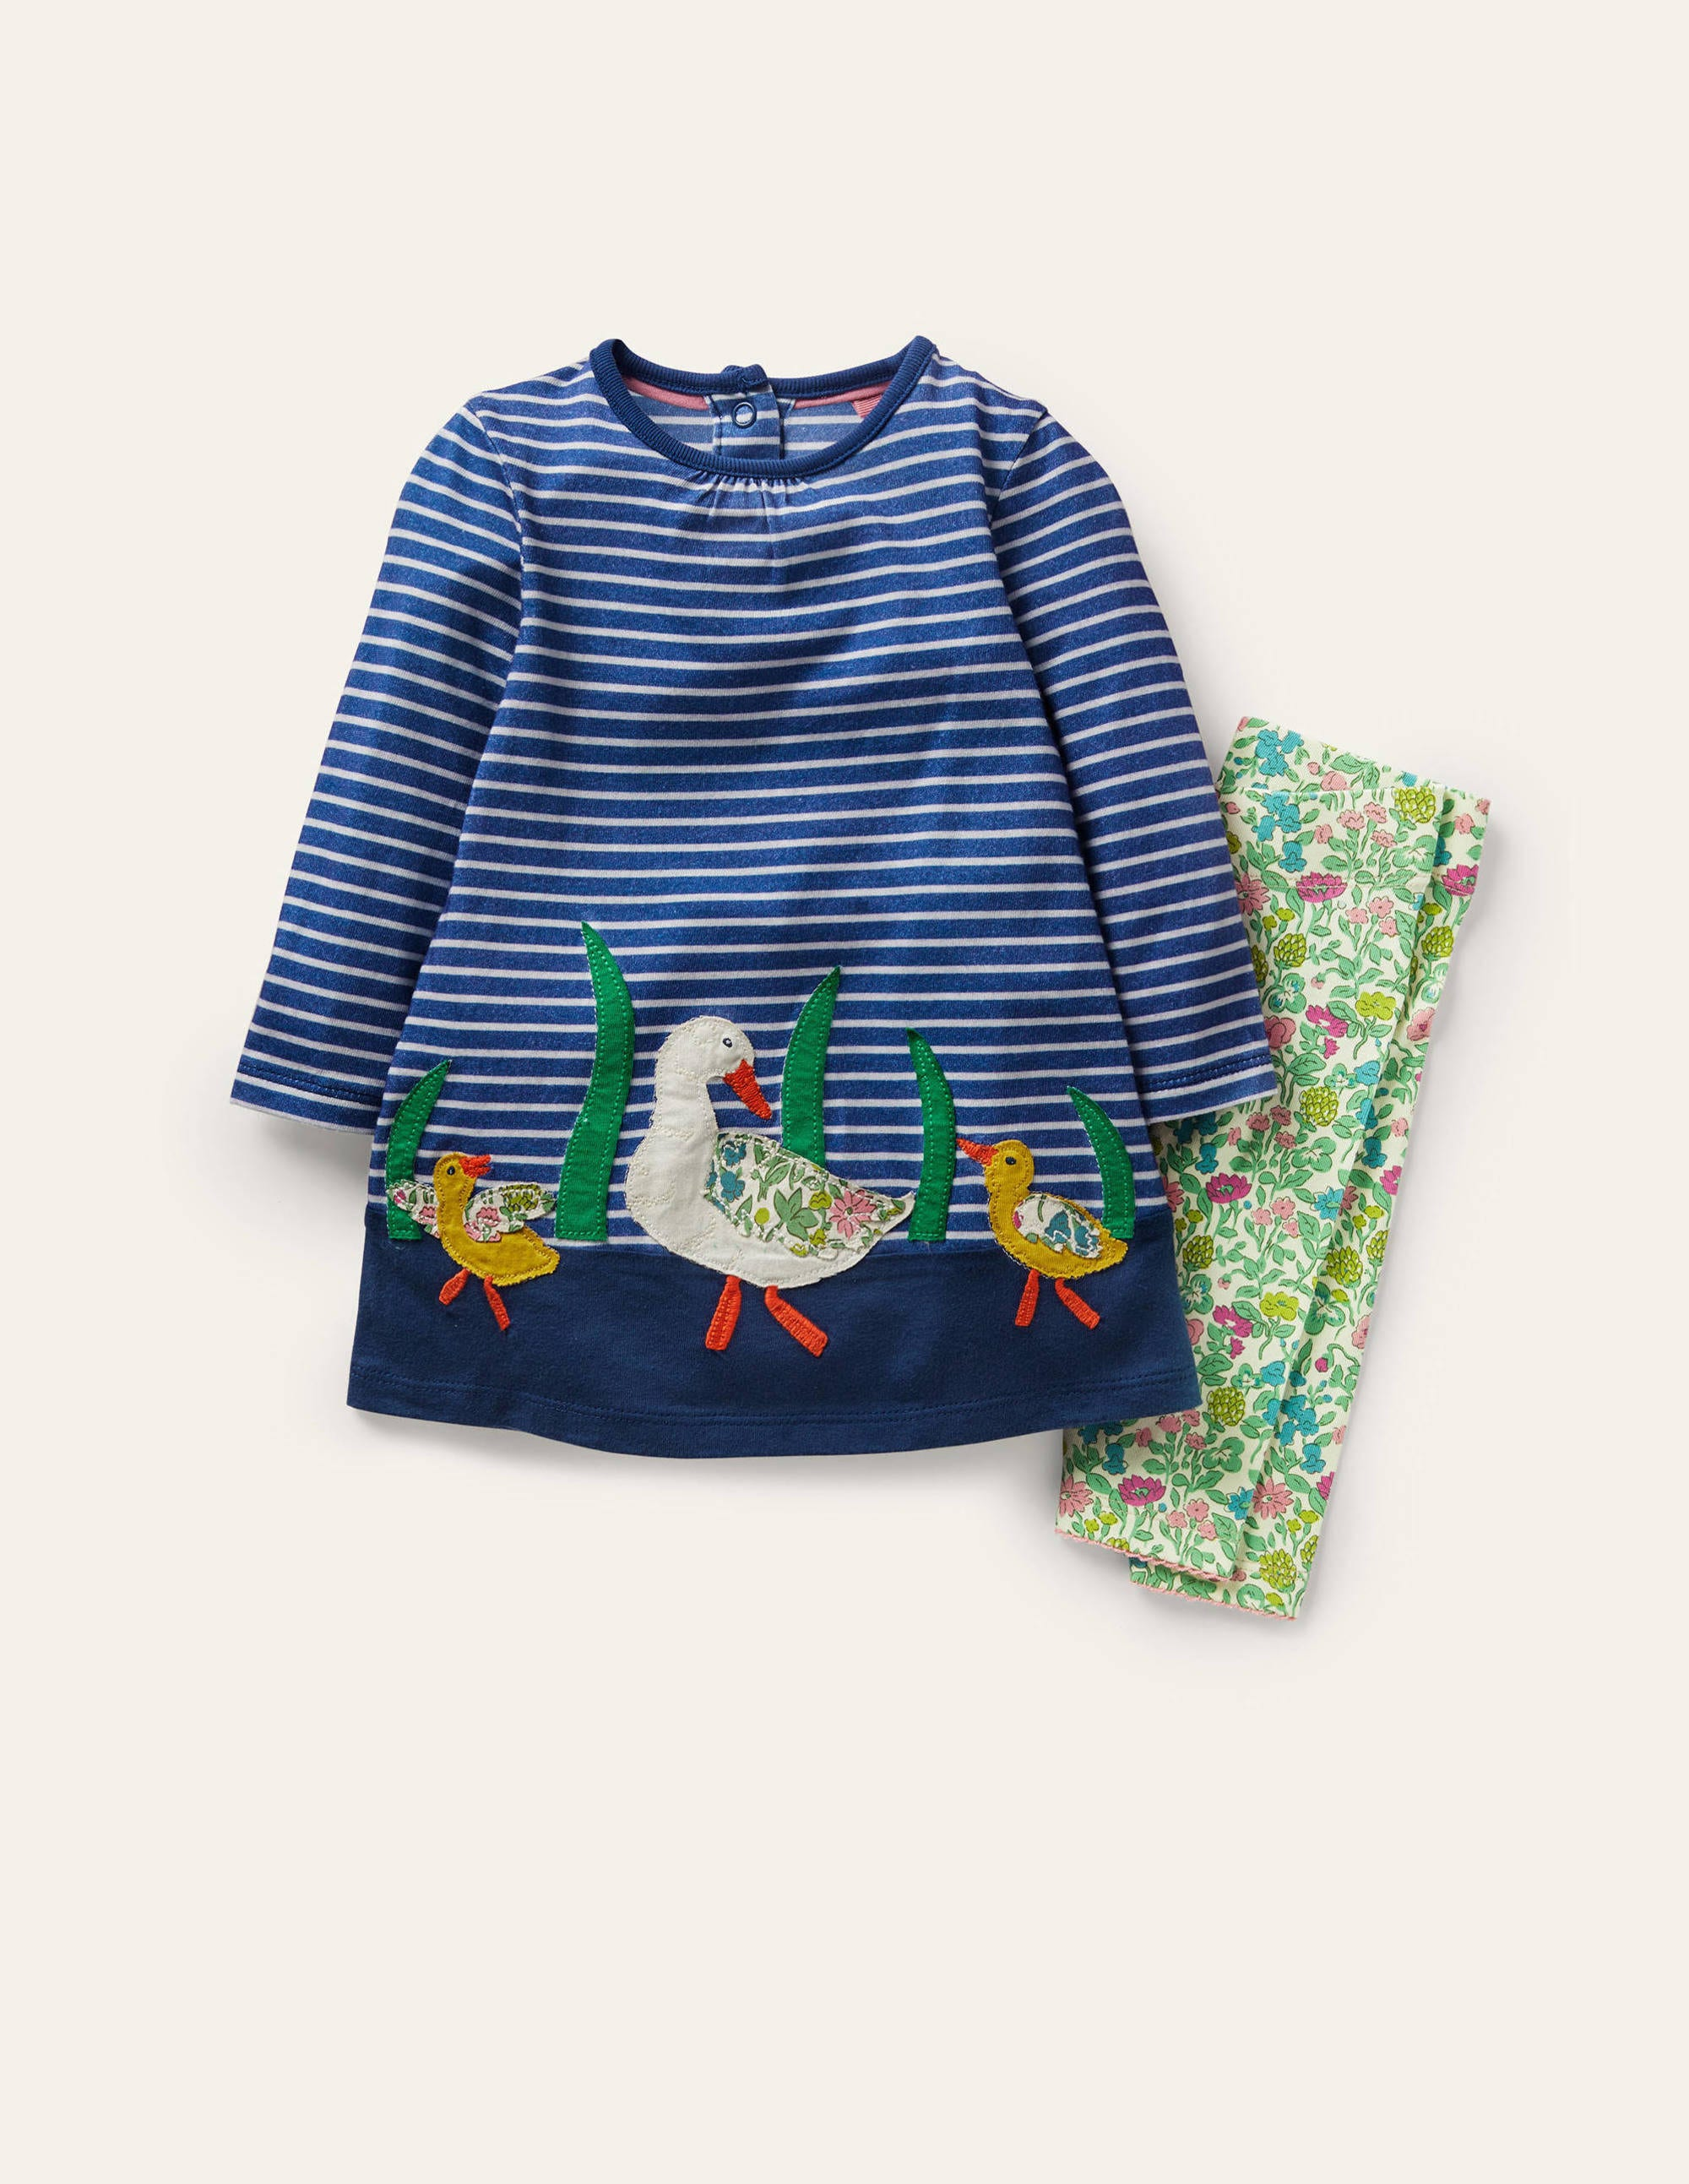 Boden Big Applique Dress Set - Venice Blue/Ivory Ducks